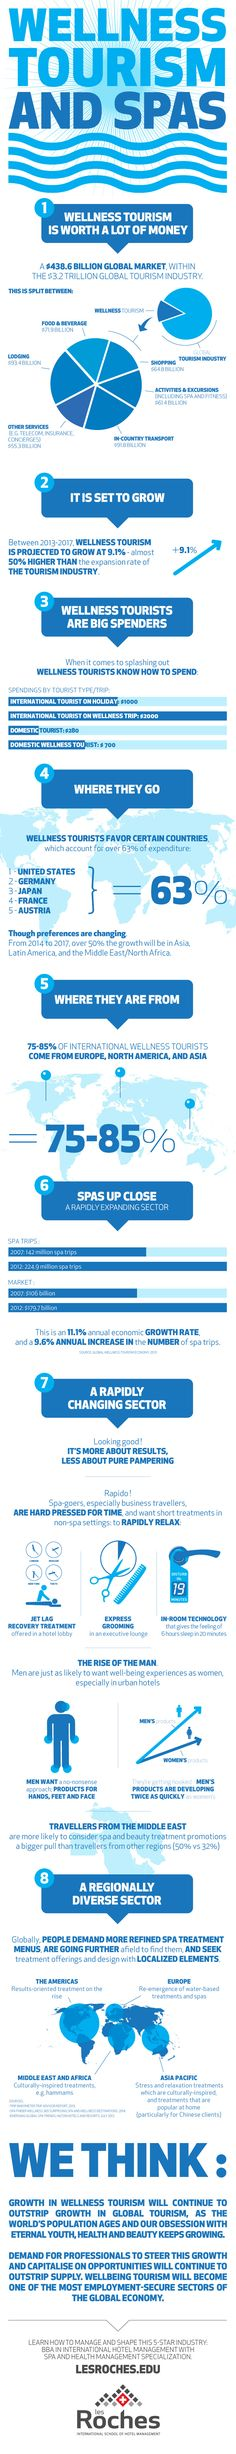 Infographic: Wellness, Tourism & Spas ~ http://www.hospitalitynet.org/news/4067035.html via @HospitalityNet @LesRochesNews #wellness #spa